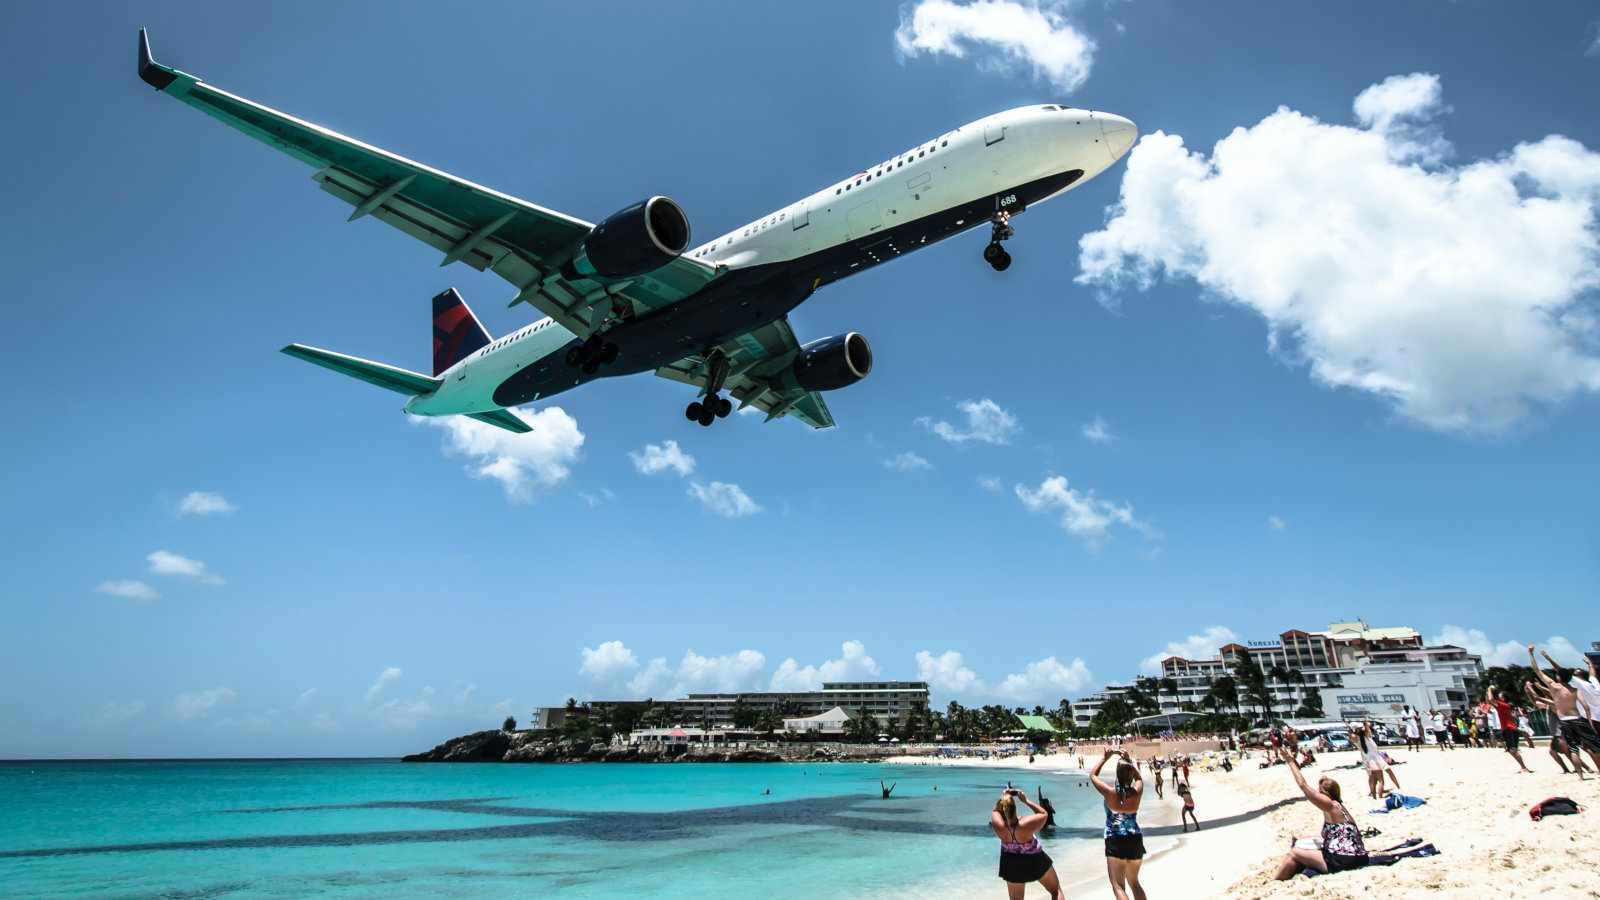 Saint Martin/Sint Maarten is split between France and the Netherlands, but both sides of this Caribbean island are safe for gay travellers to enjoy!